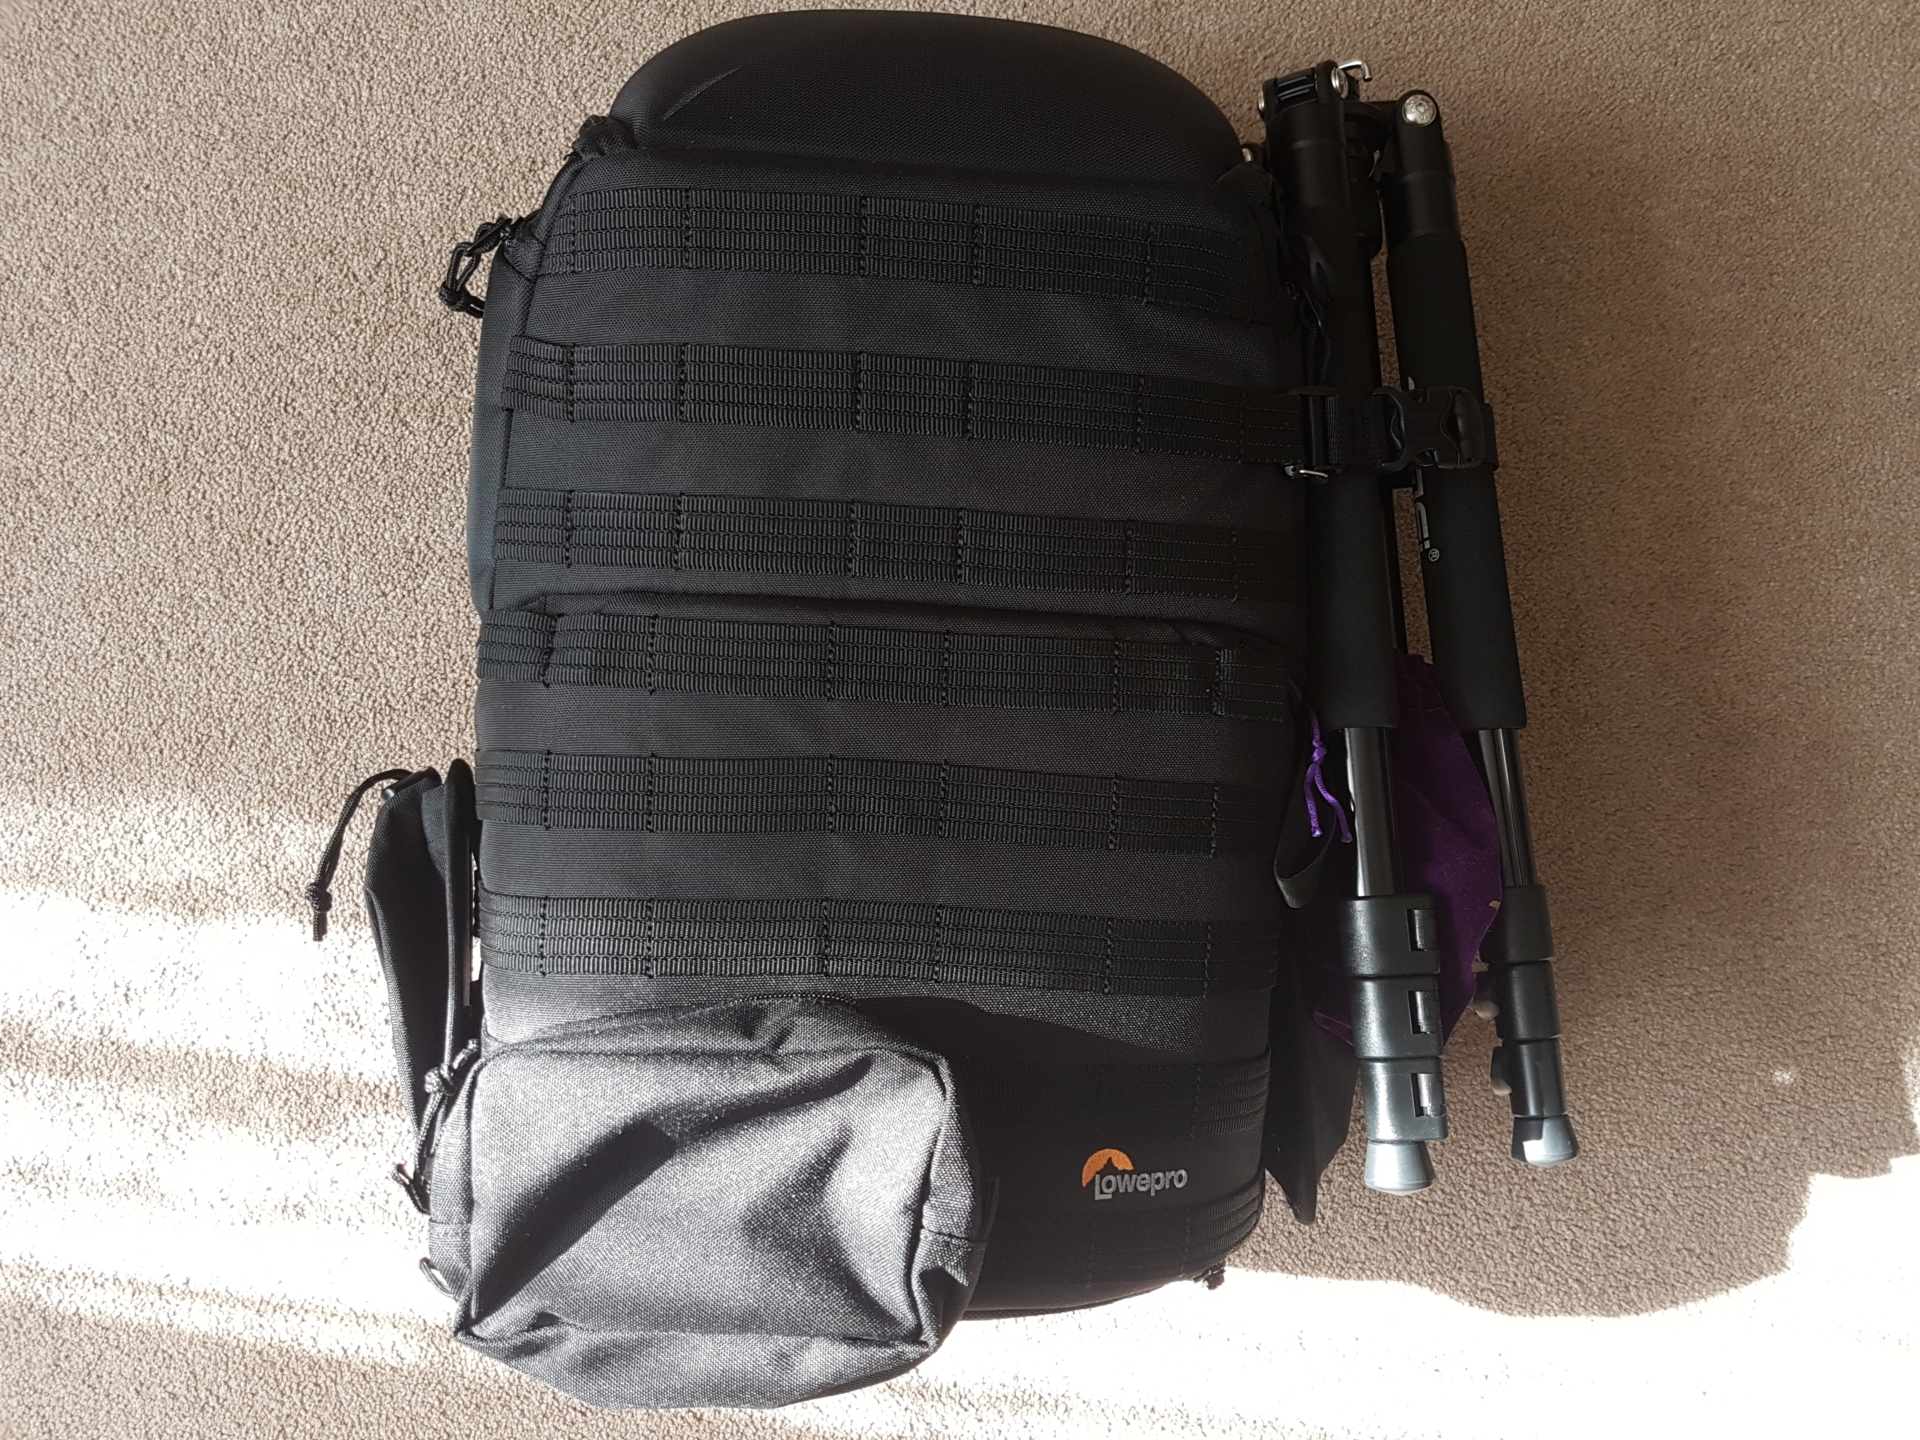 My new bag, the Lowepro ProTactic 450 AW